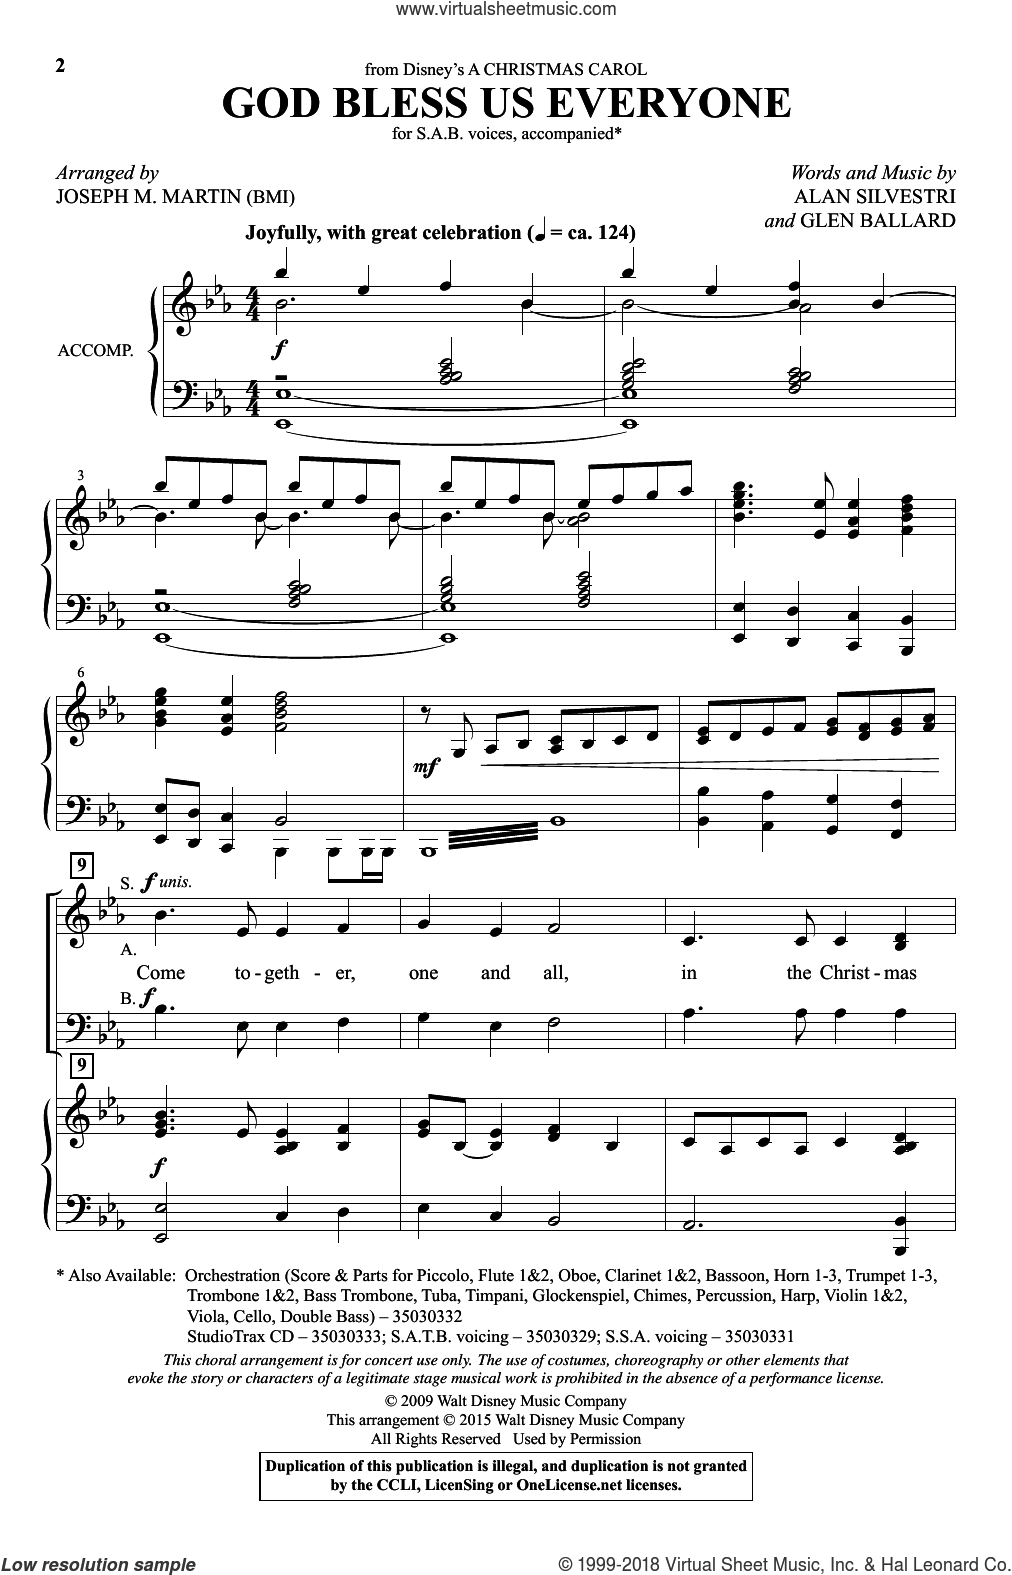 God Bless Us Everyone (from Disney's A Christmas Carol) sheet music for choir and piano (SAB) by Joseph M. Martin, Alan Silvestri, Andrea Bocelli and Glen Ballard. Score Image Preview.